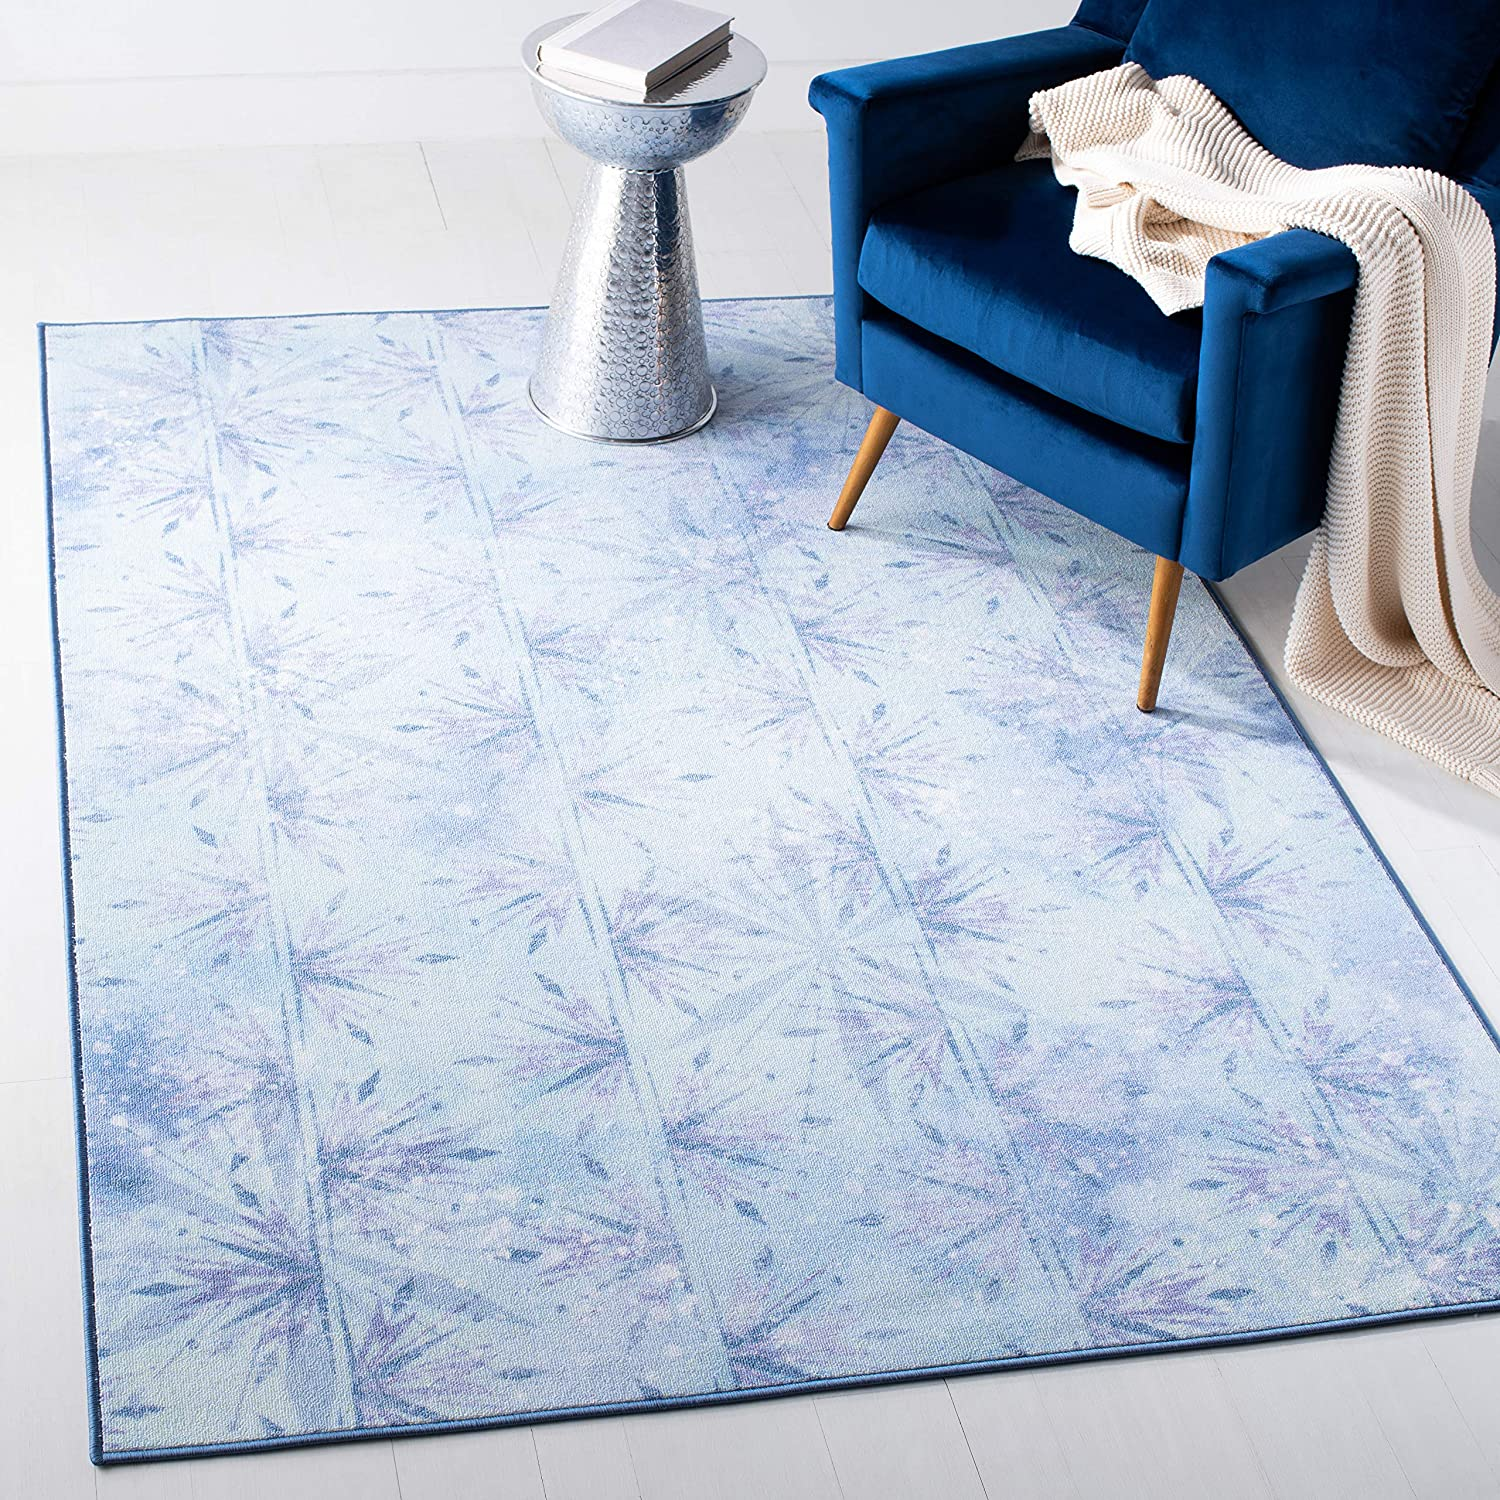 Safavieh Max 65% OFF Collection Inspired by Disney's Frozen Rug Element II - favorite